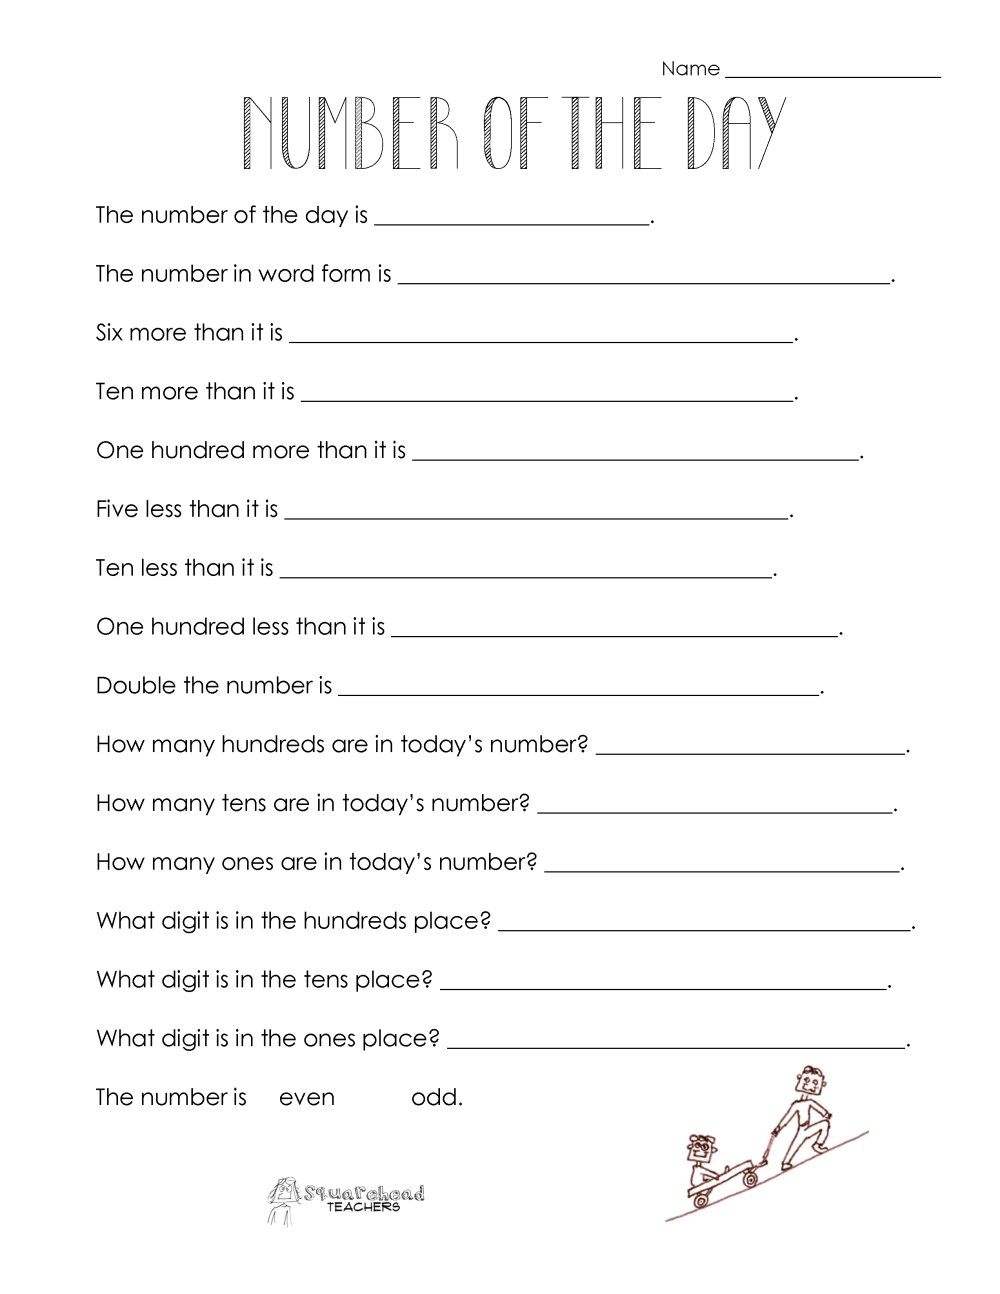 medium resolution of Number of the Day (worksheet collection)   Squarehead Teachers